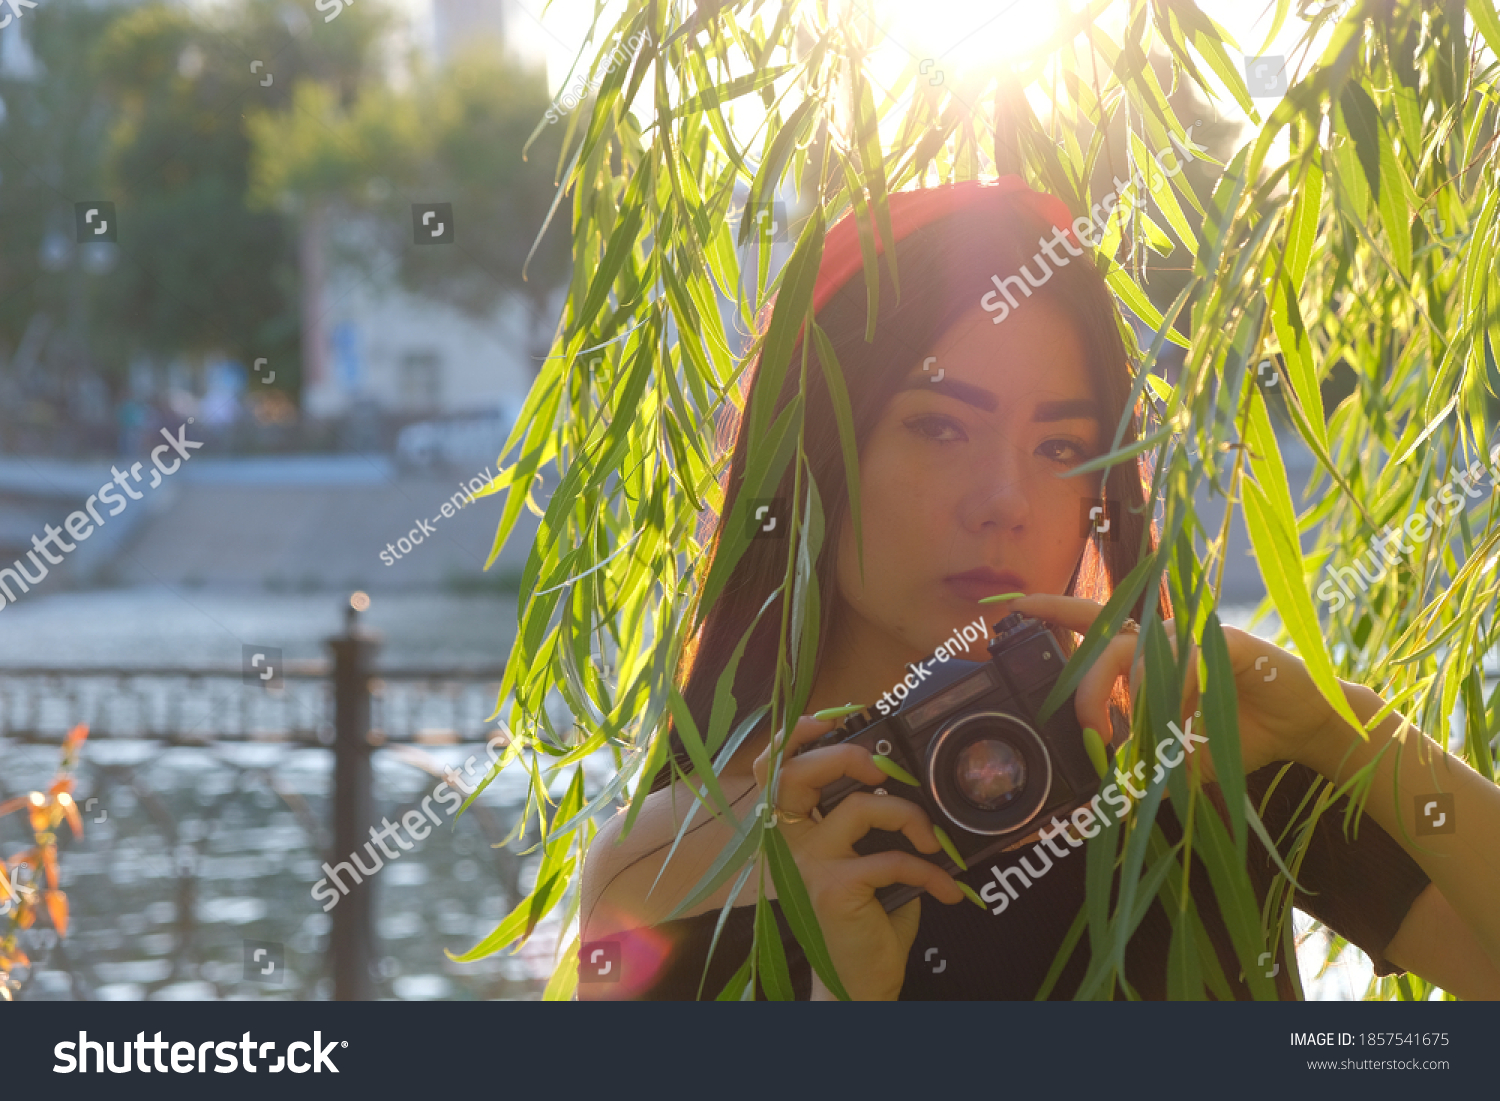 stock-photo-vintage-film-camera-in-hands